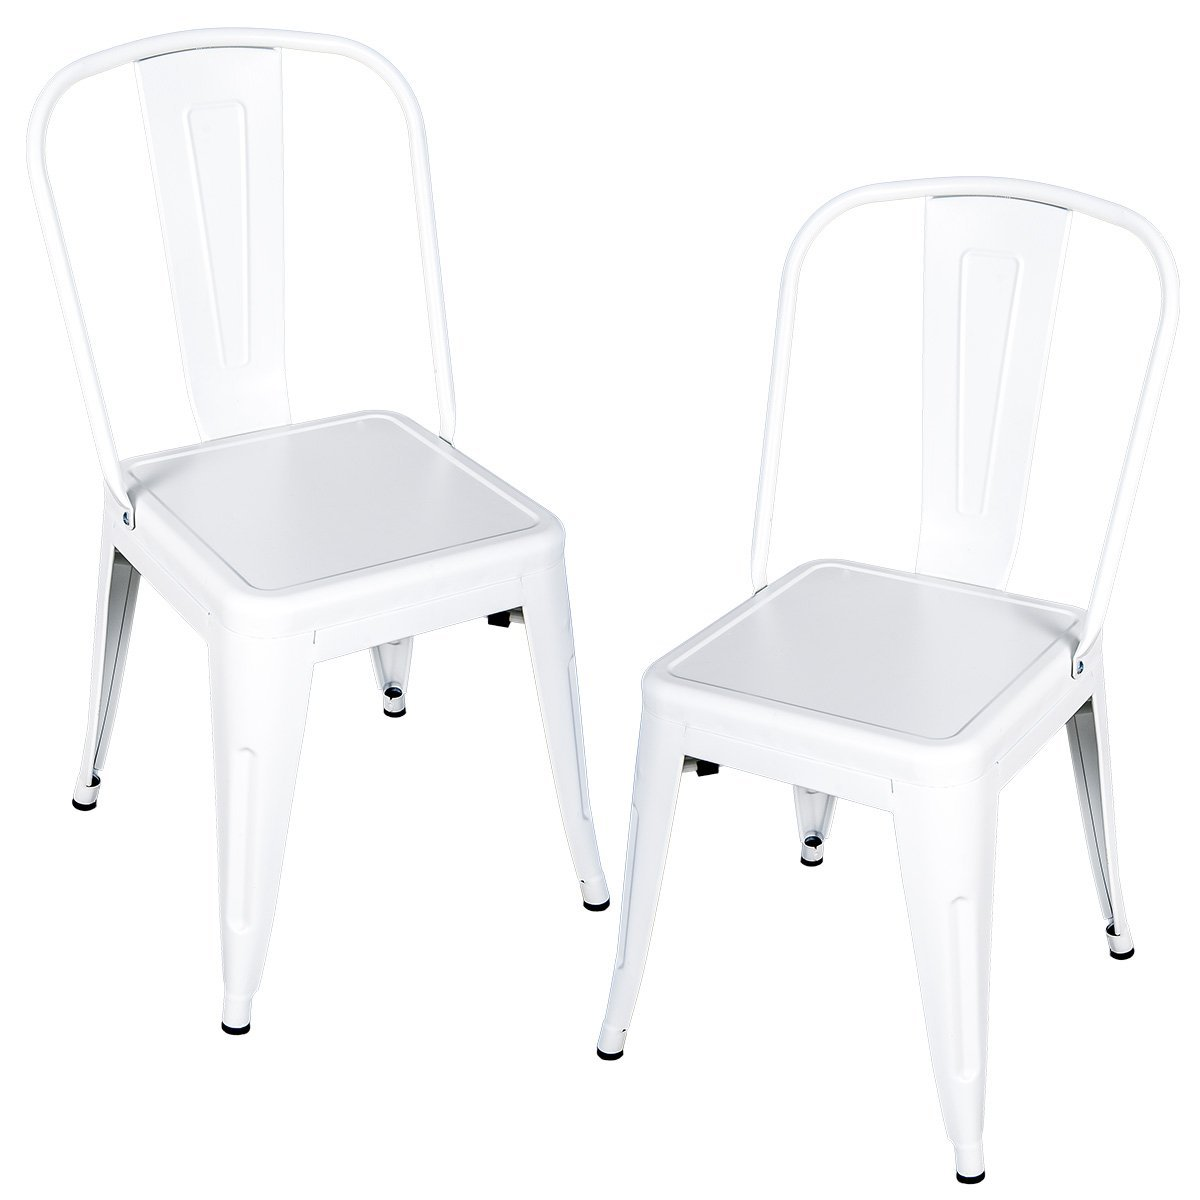 Charmant Merax Seat Series Metal Dining Chairs Of Tolix Style, Set Of 2(White)